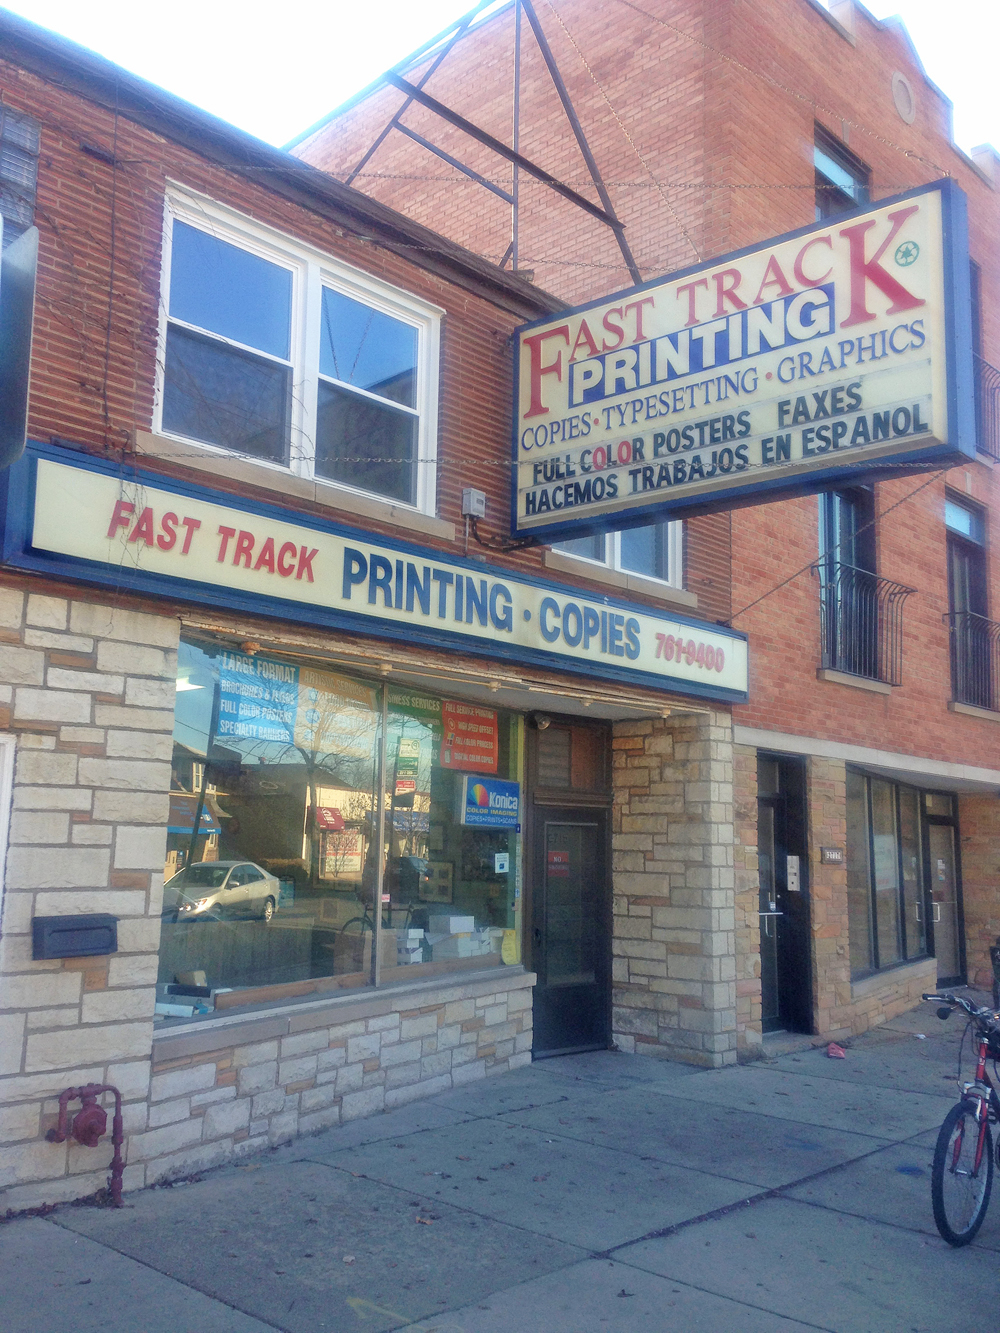 Fast Track Printing